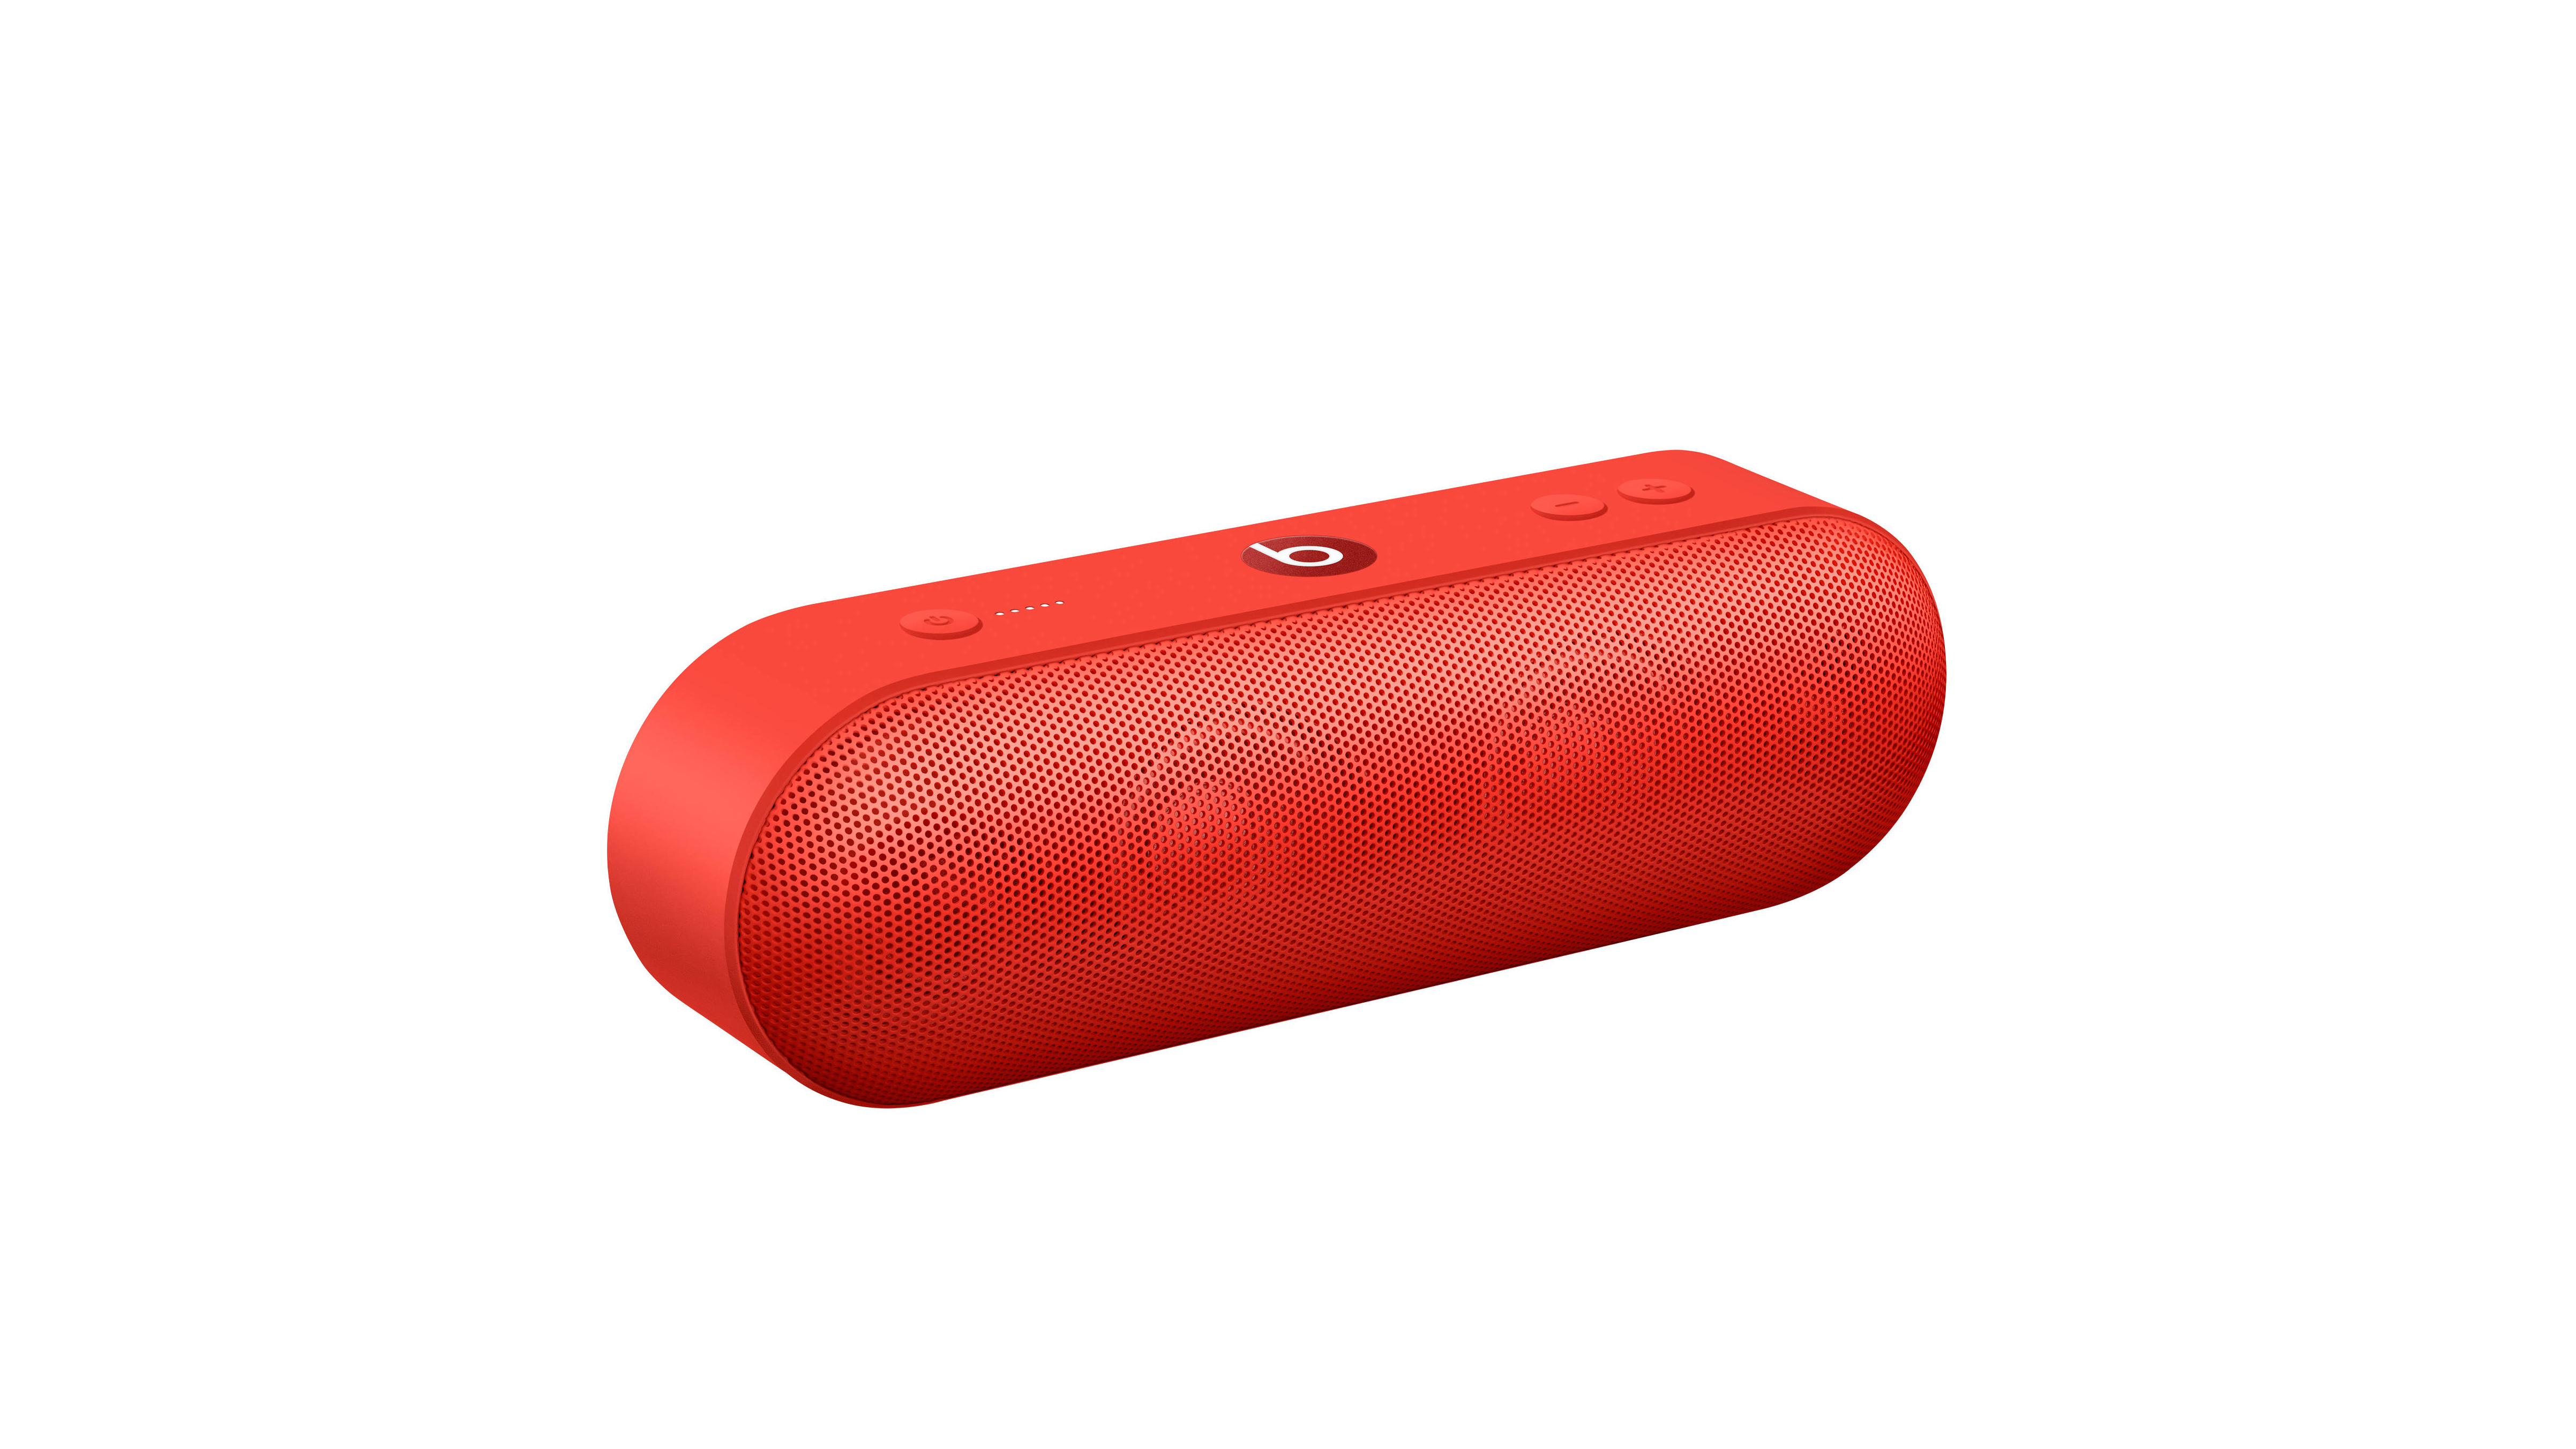 Over 1,000 Reviewers Love the Beats Pill+ Speaker. At $66 Off, You Will Too